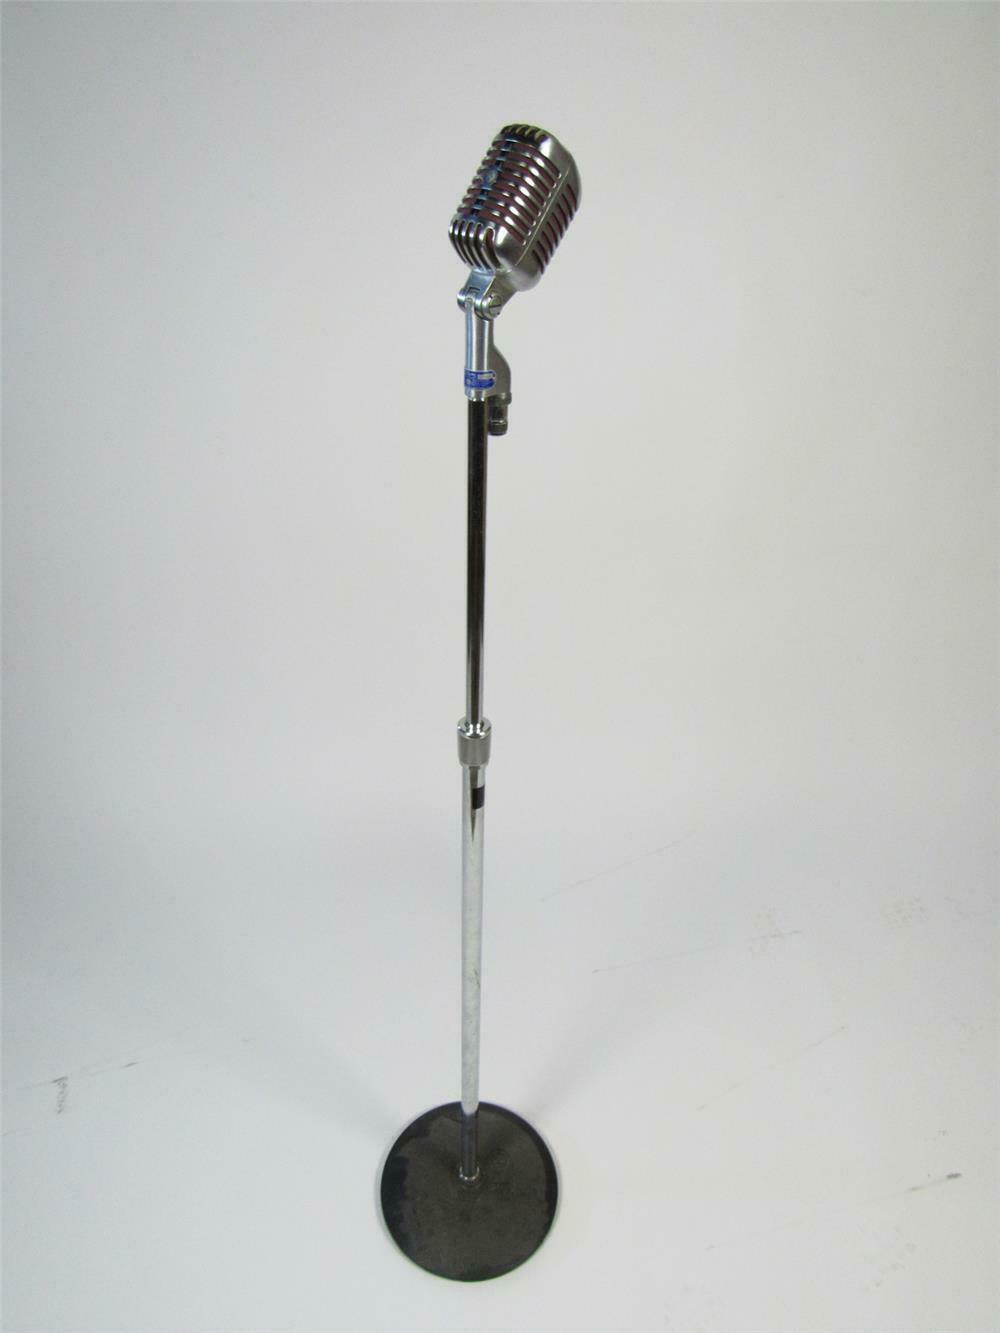 Iconic 1950s Shure Microphone on stand.